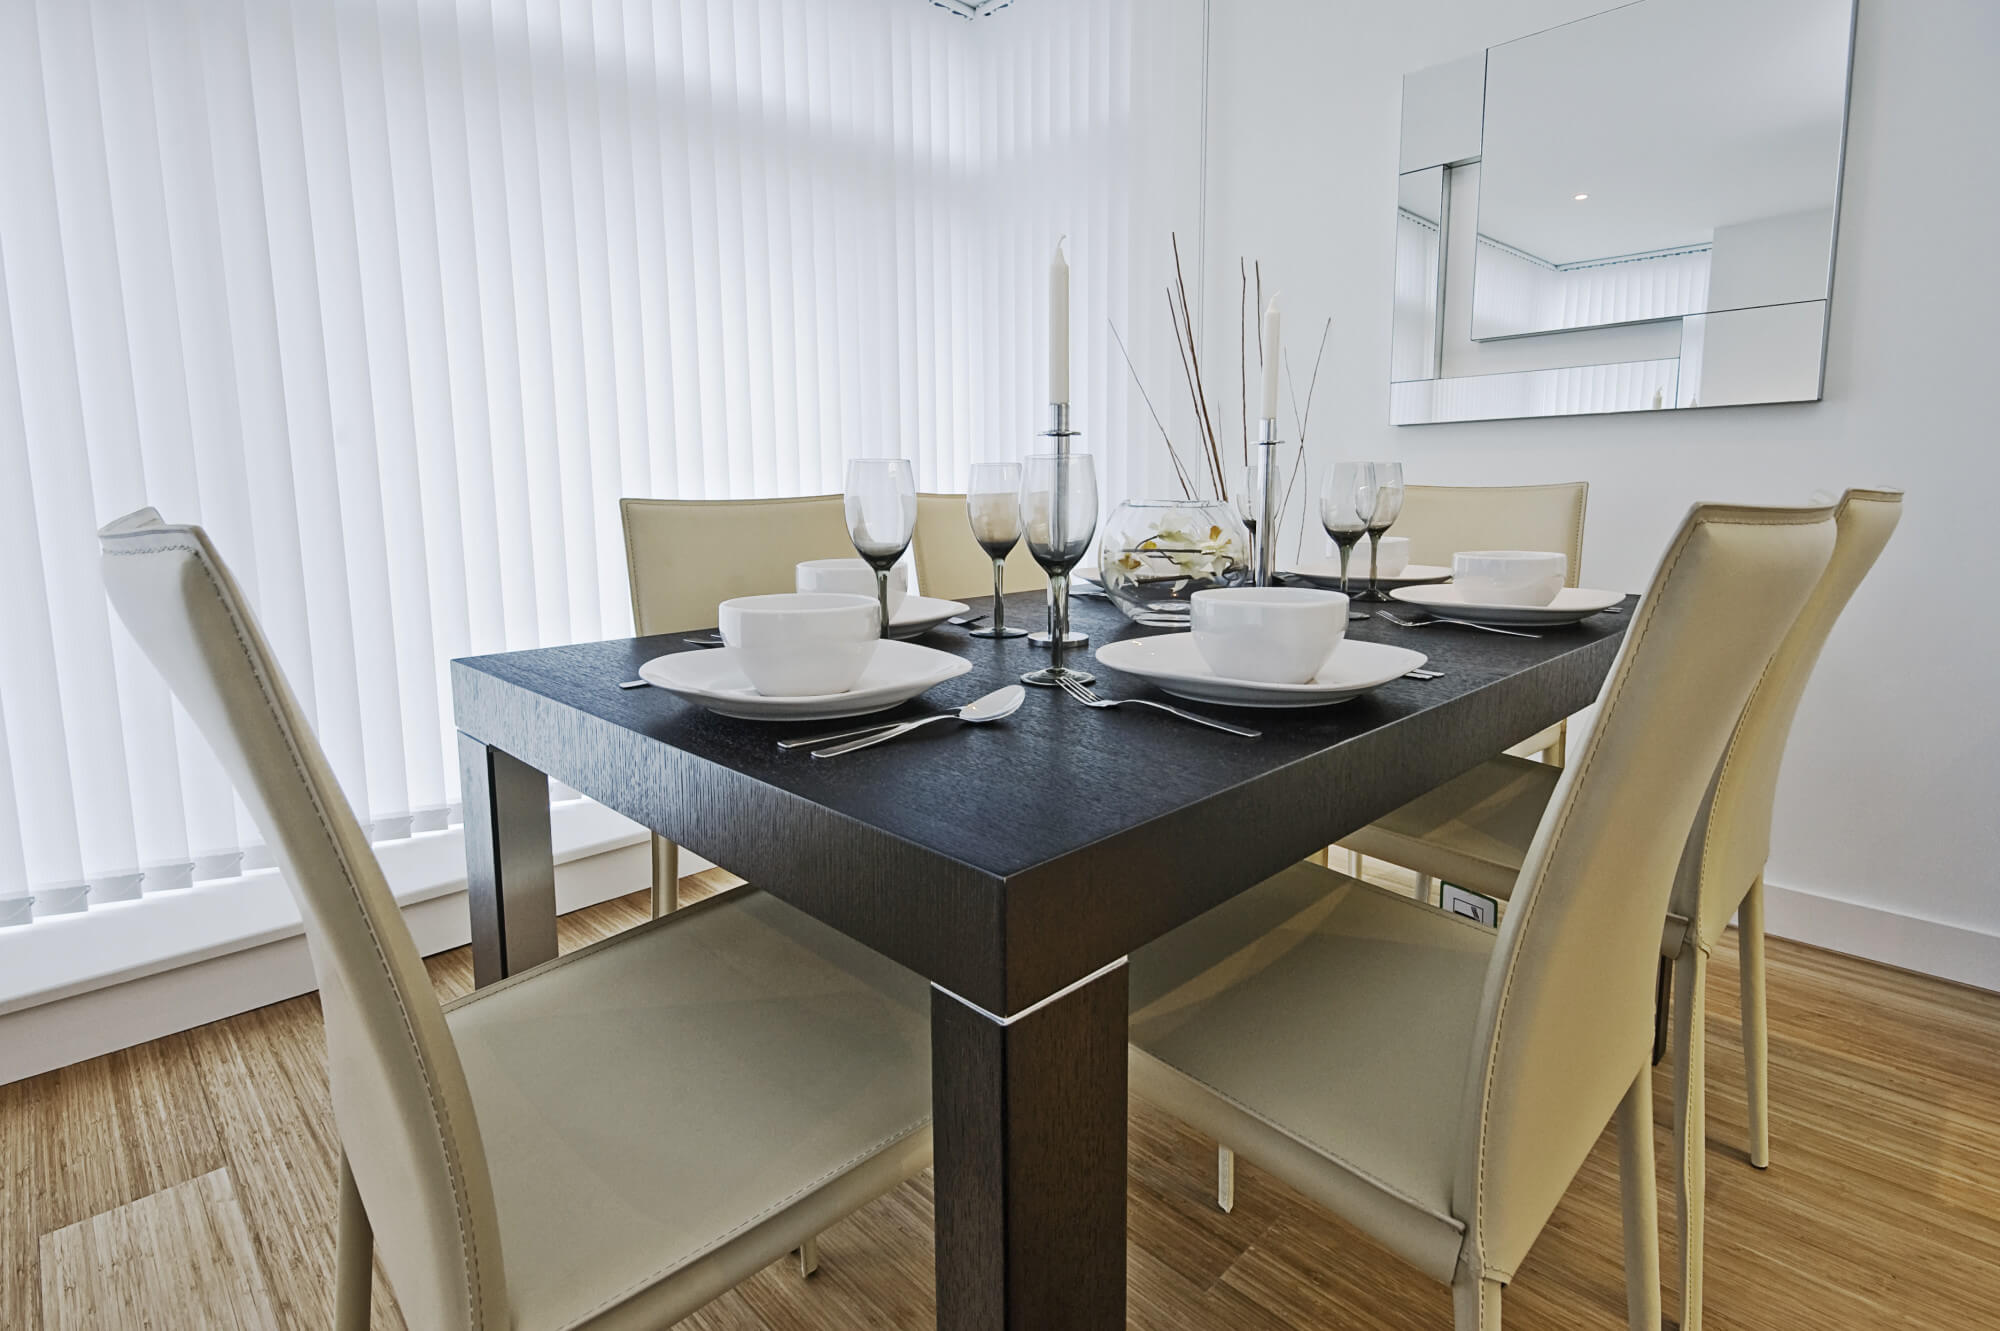 How To Choose The Right Dining Room Set For Your Home